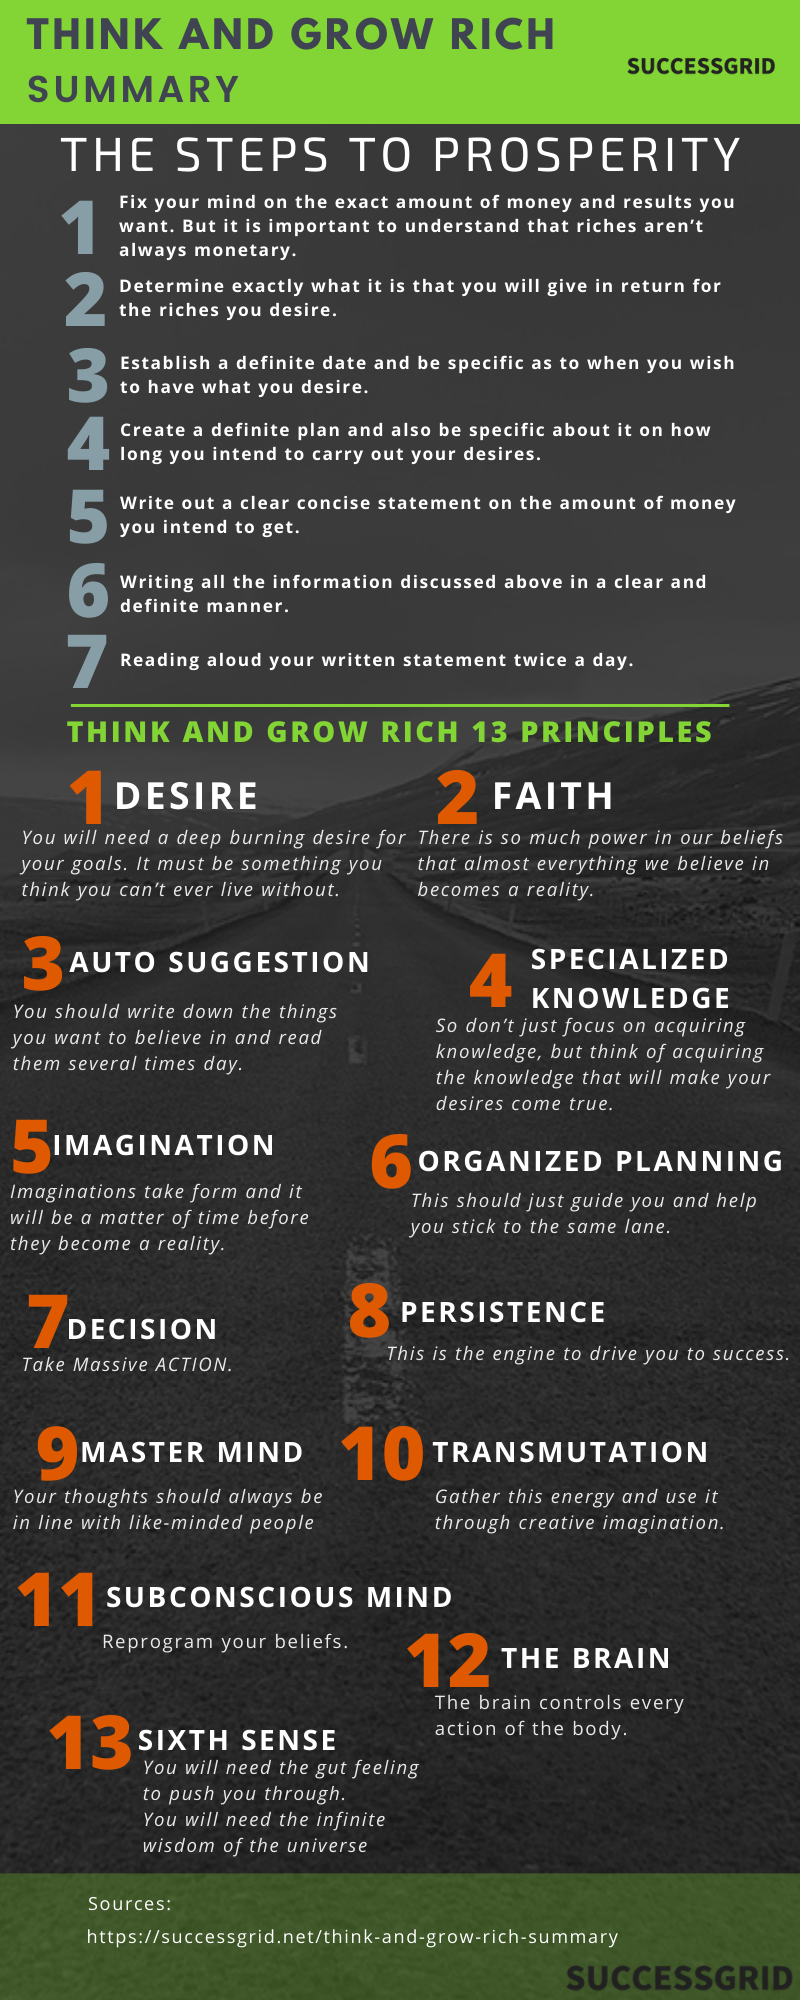 Think and Grow Rich Summary Infographic